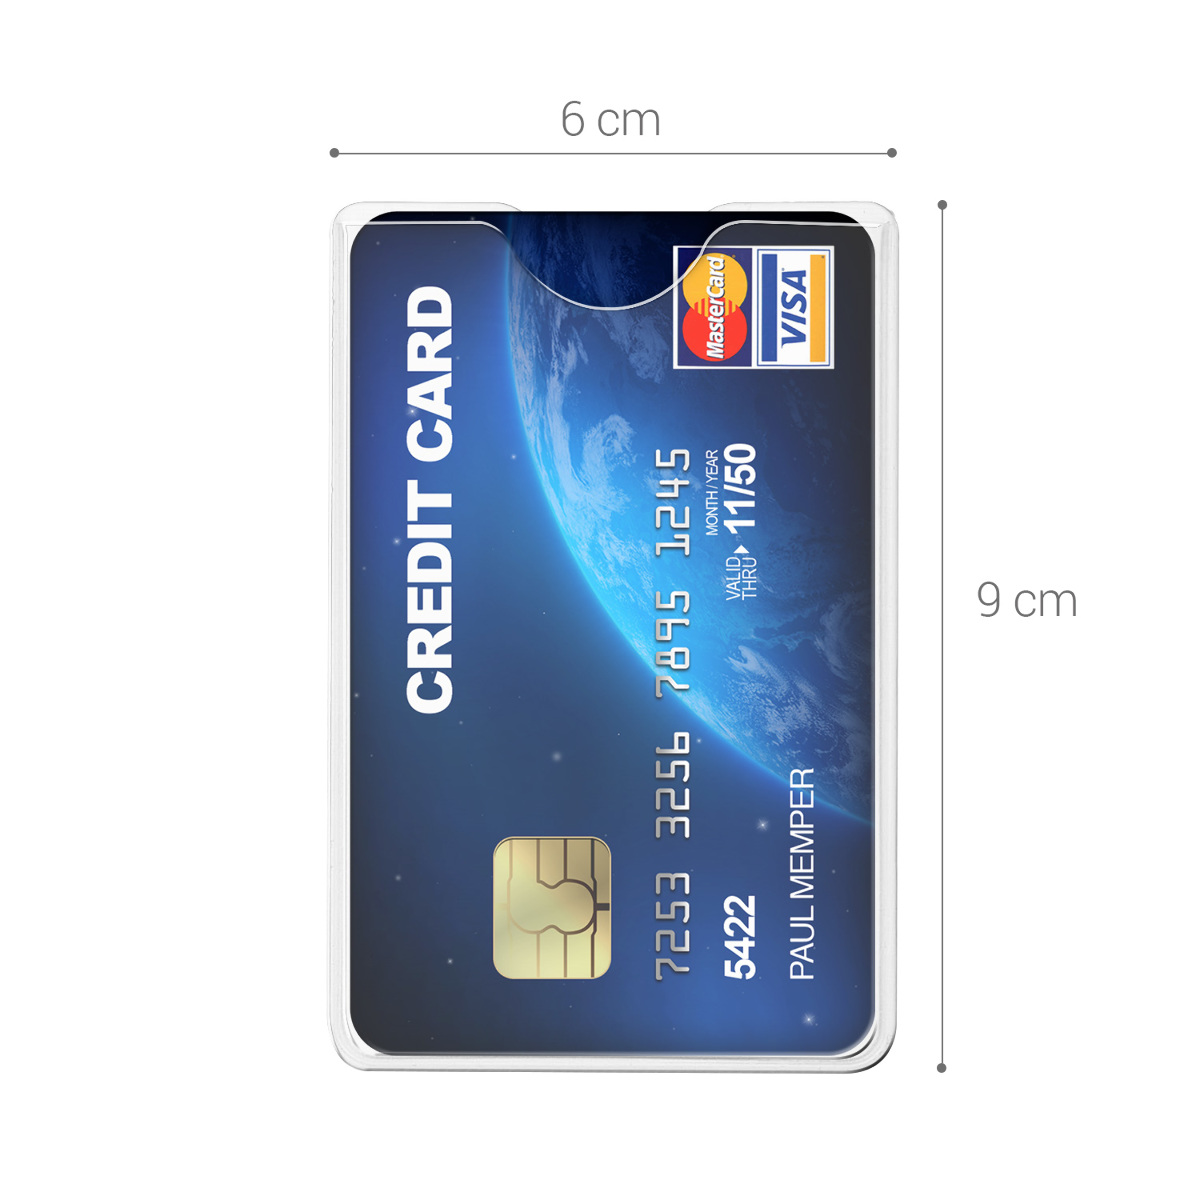 Details about 10x Transparent Credit Card Sleeve - Protector for ID,  Business, SSN Cards